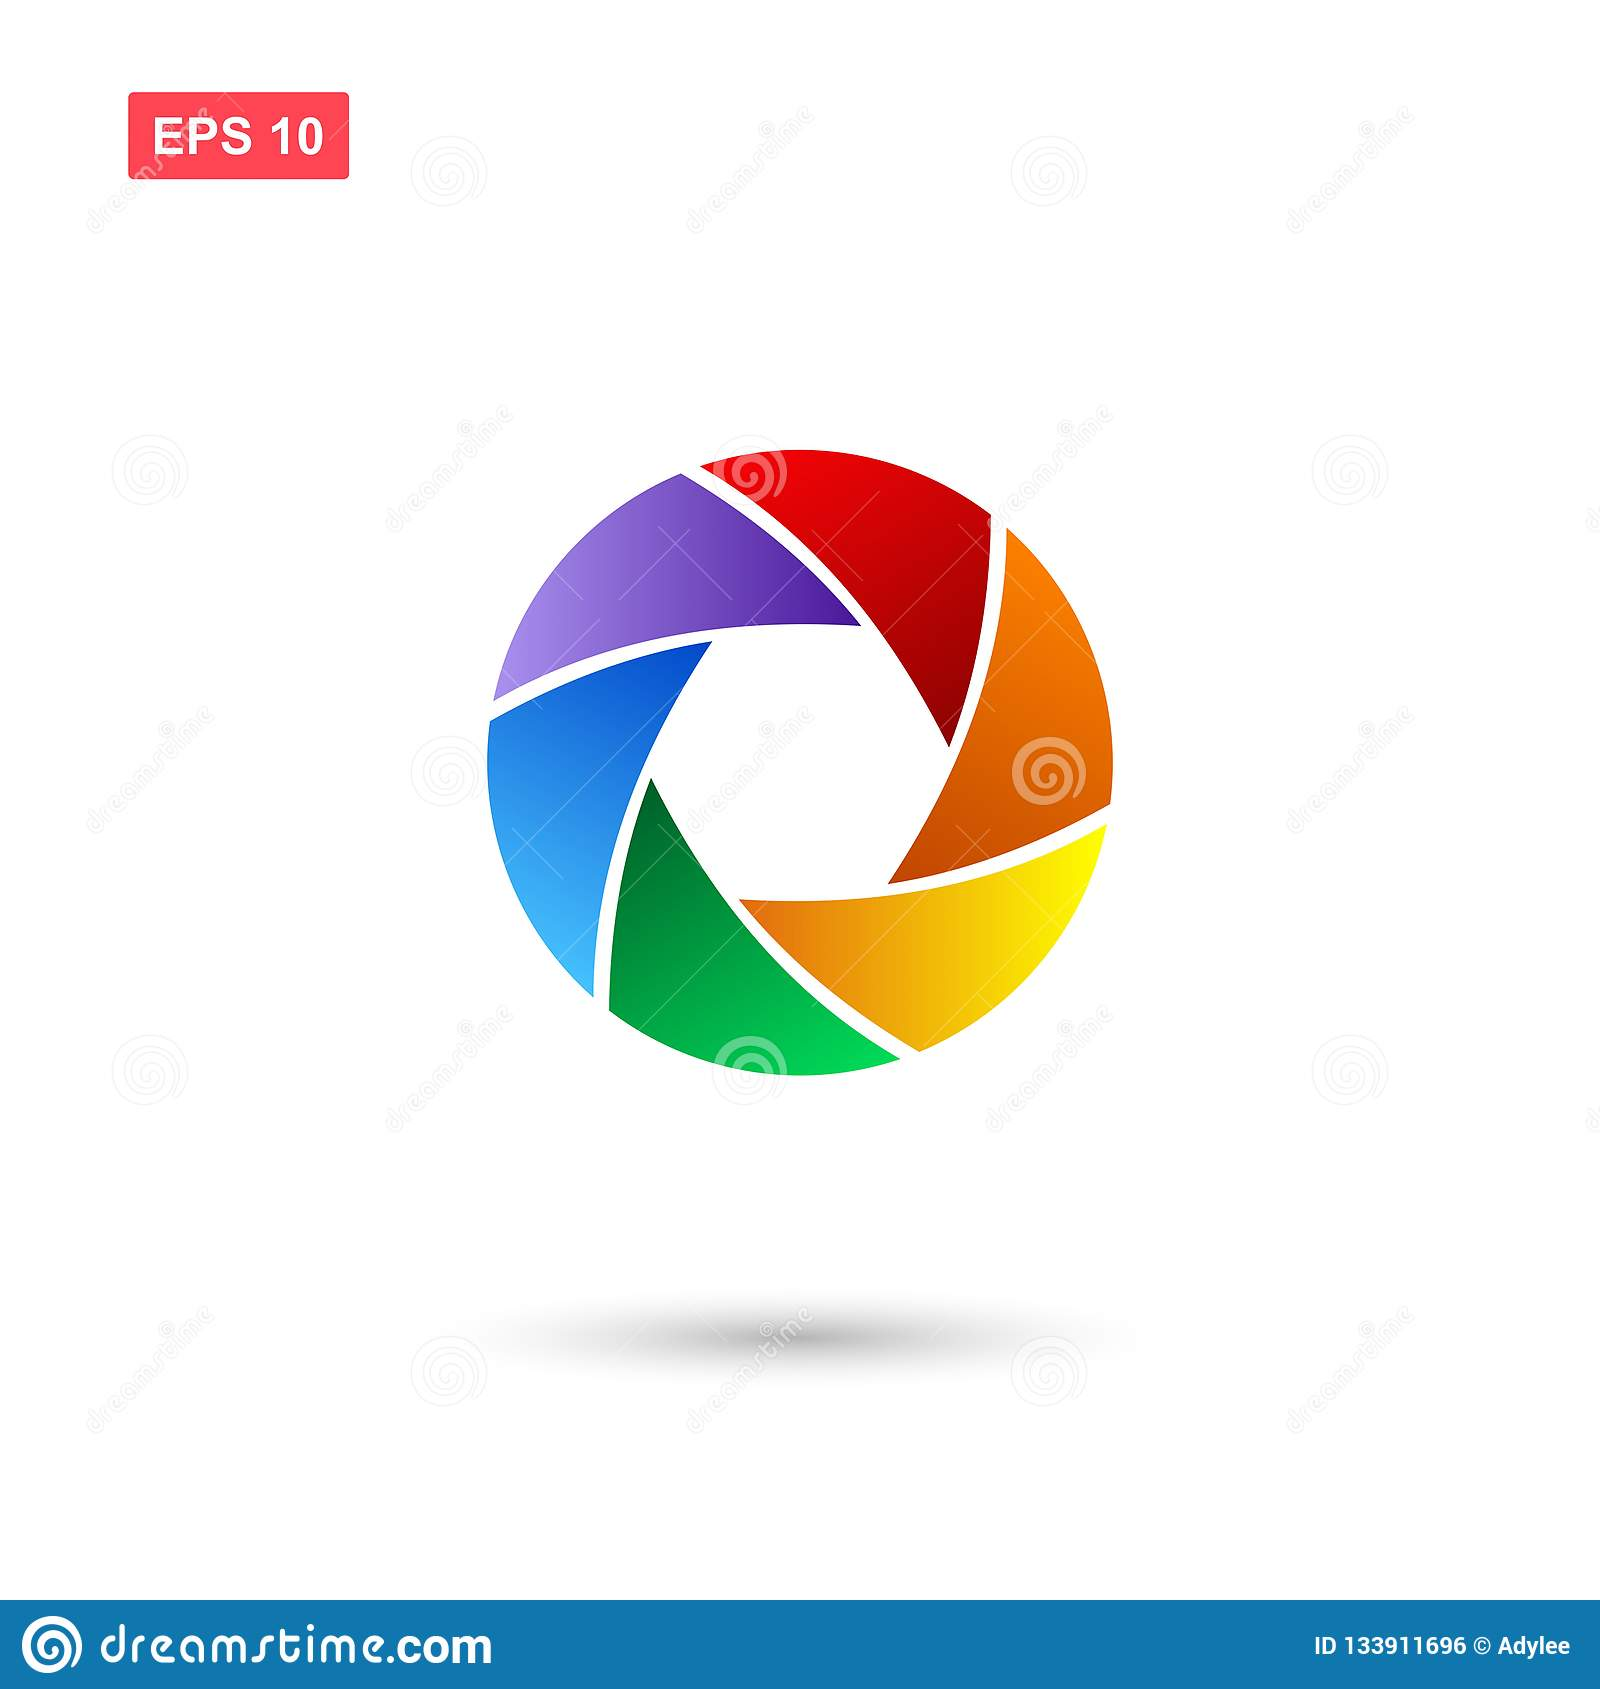 Diafragma Or Aperture Vector Icon Isolated With Colors Stock Vector